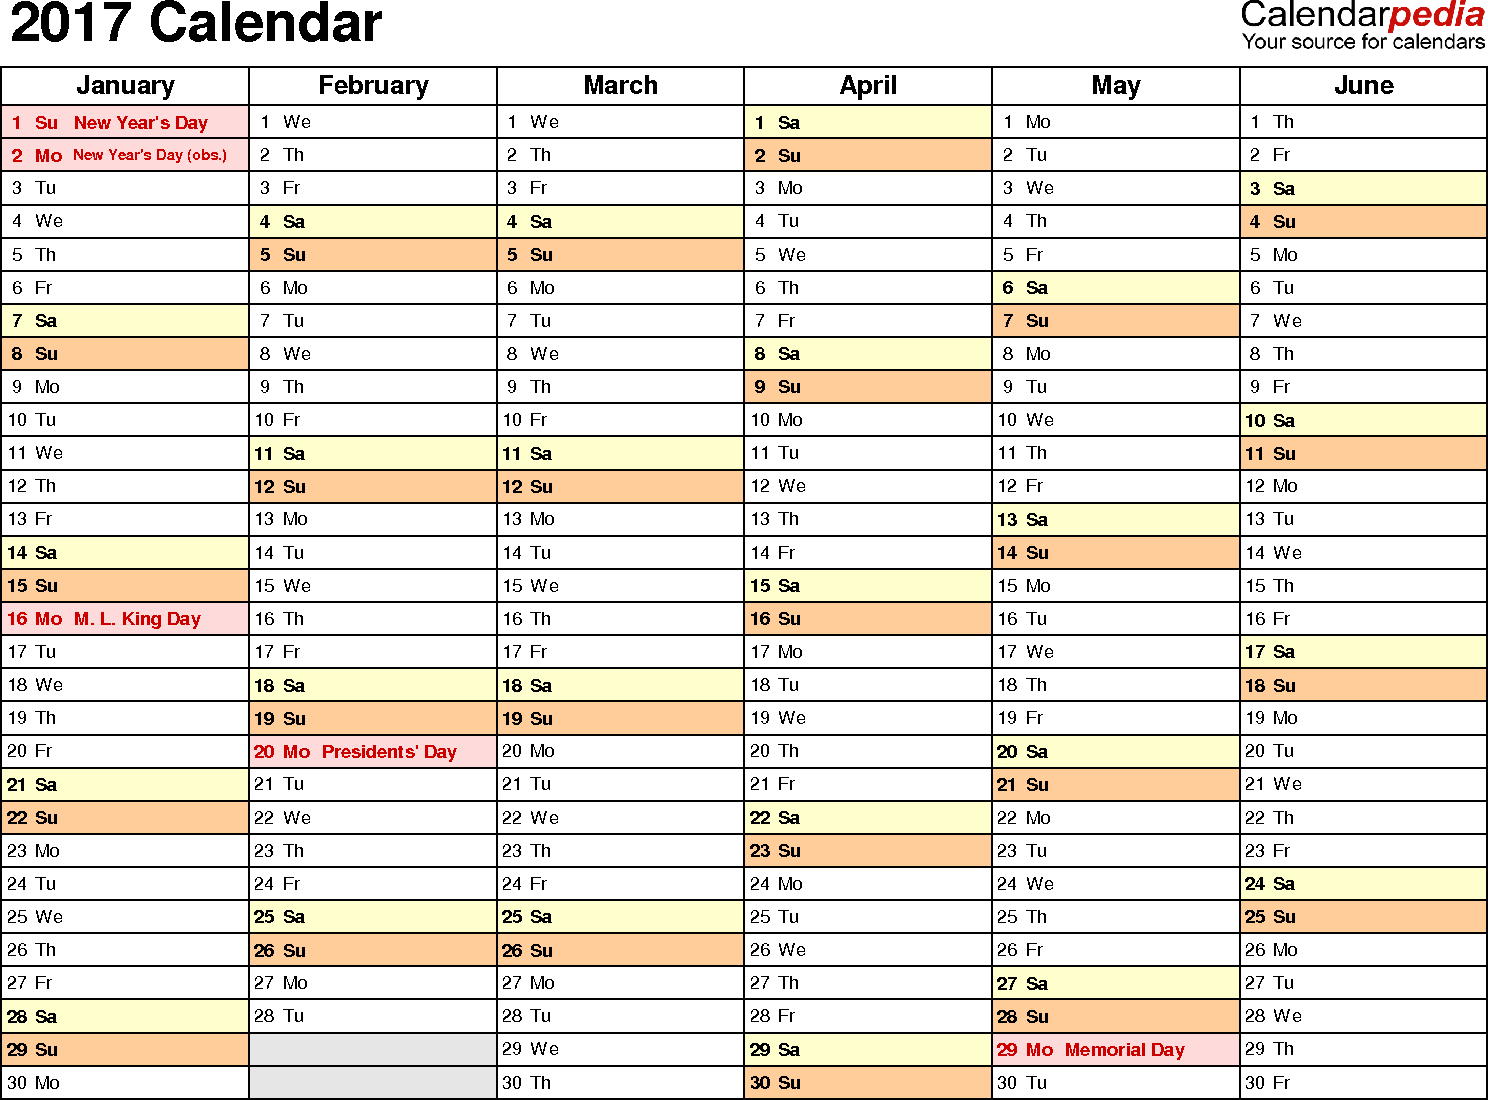 Ediblewildsus  Outstanding  Calendar  Download  Free Printable Excel Templates Xls With Likable Template   Calendar For Excel Months Horizontally  Pages Landscape Orientation With Amusing Plus Minus Formula In Excel Also Freeze Pane Excel  In Addition Shortcut To Merge Cells In Excel And Excel Vlookup Multiple Sheets As Well As If Or Statements In Excel Additionally Purchase Microsoft Excel From Calendarpediacom With Ediblewildsus  Likable  Calendar  Download  Free Printable Excel Templates Xls With Amusing Template   Calendar For Excel Months Horizontally  Pages Landscape Orientation And Outstanding Plus Minus Formula In Excel Also Freeze Pane Excel  In Addition Shortcut To Merge Cells In Excel From Calendarpediacom